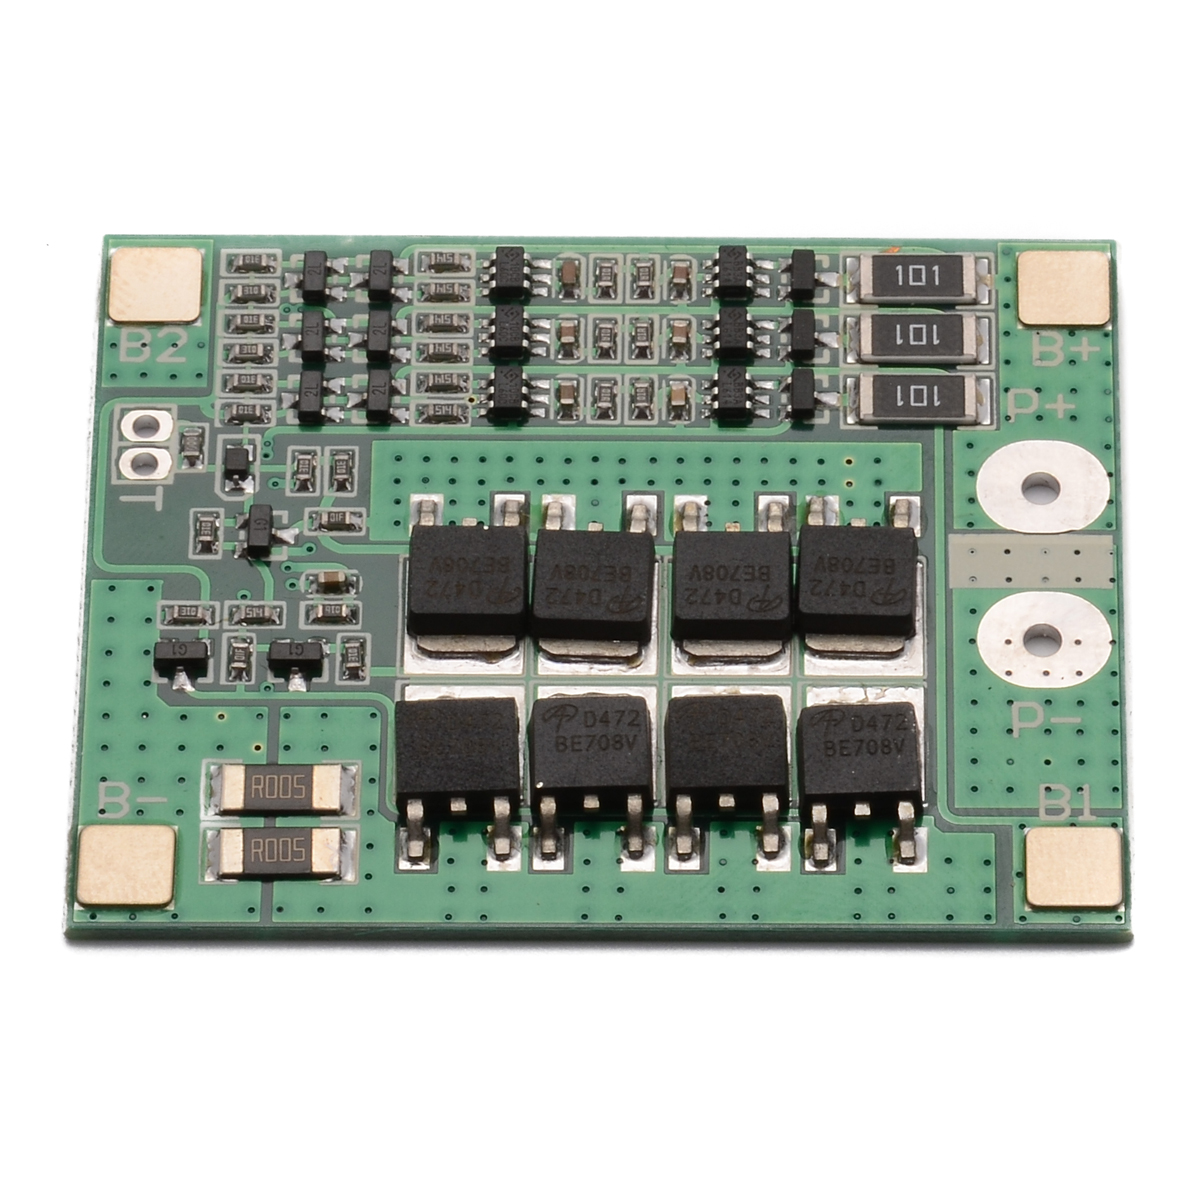 New 3S 40A Li-ion Lithium Battery Charger Module BMS Protection Charging Board 12.6V-13.6V Voltage Protective Board